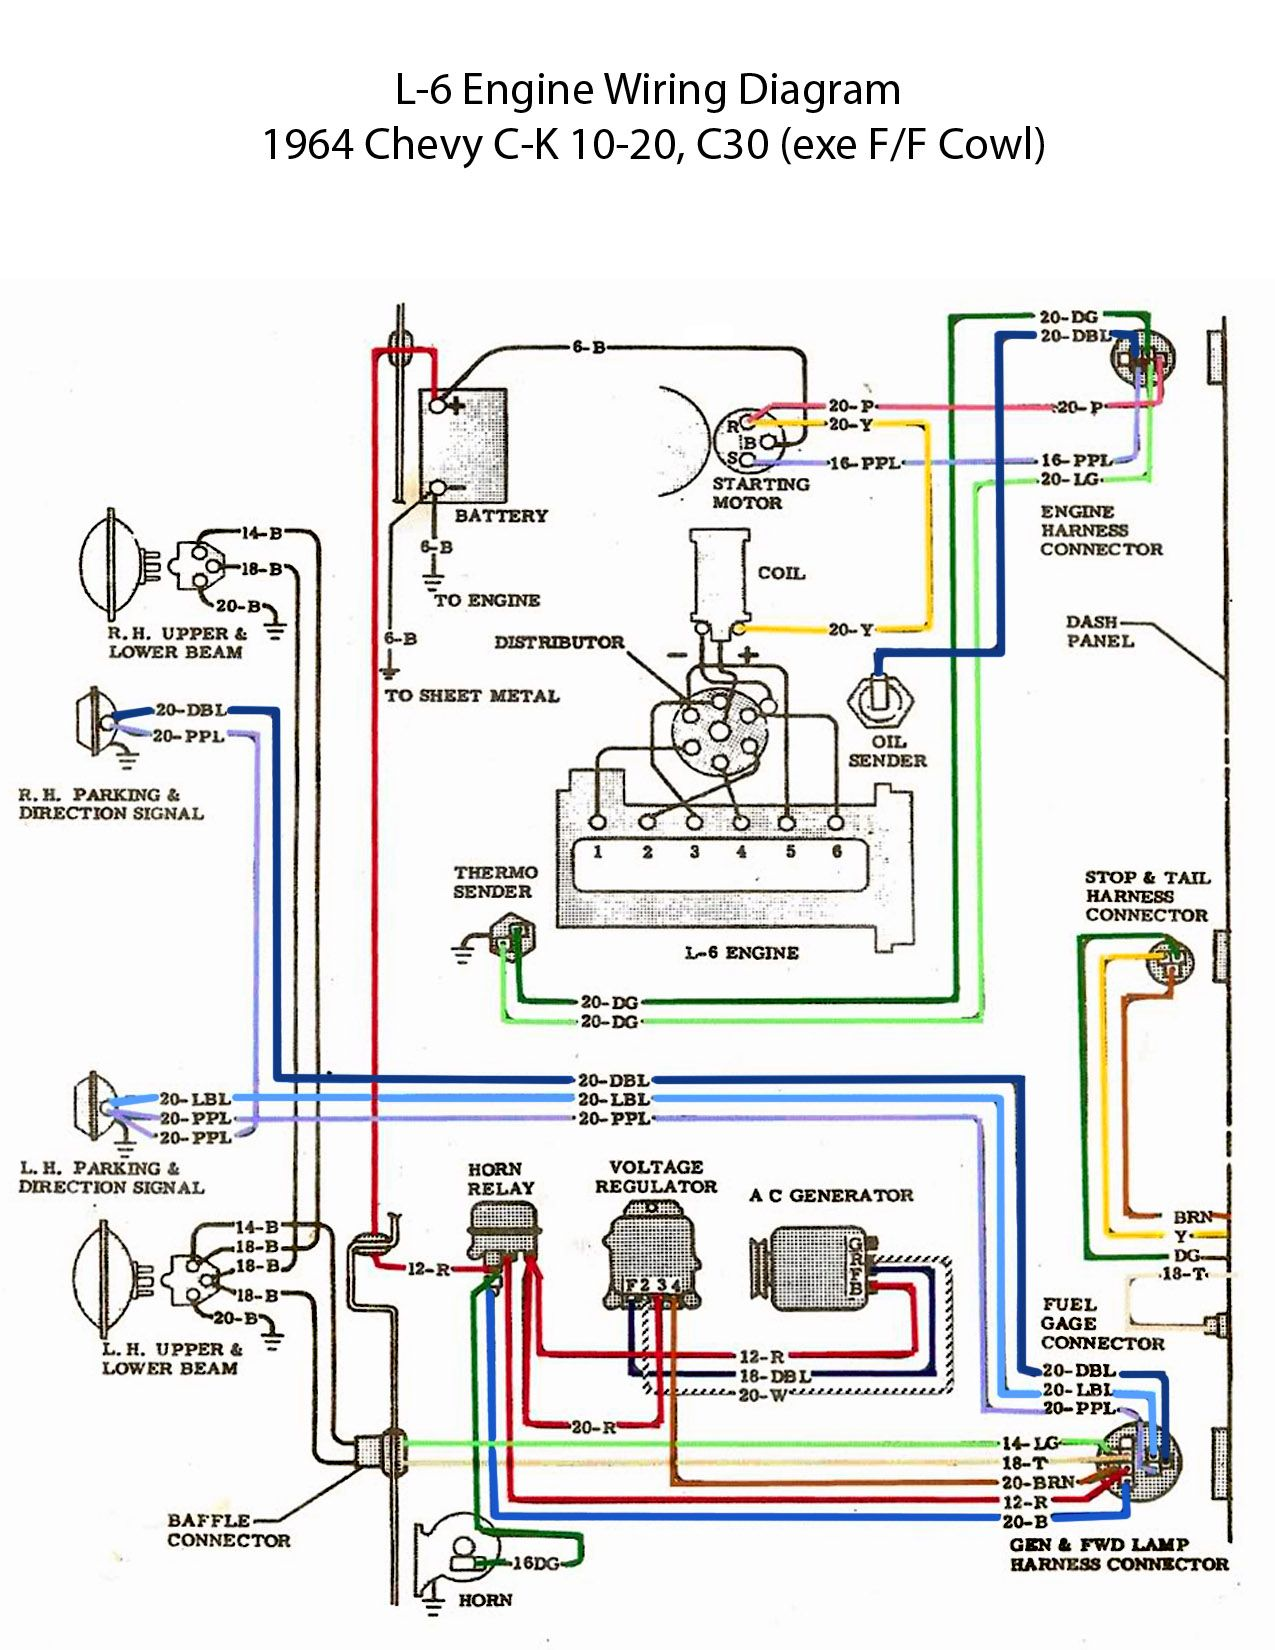 electric l 6 engine wiring diagram 60s chevy c10 wiring rh pinterest com Chevy Ignition Switch Wiring Diagram 1979 Chevy Truck Wiring Diagram